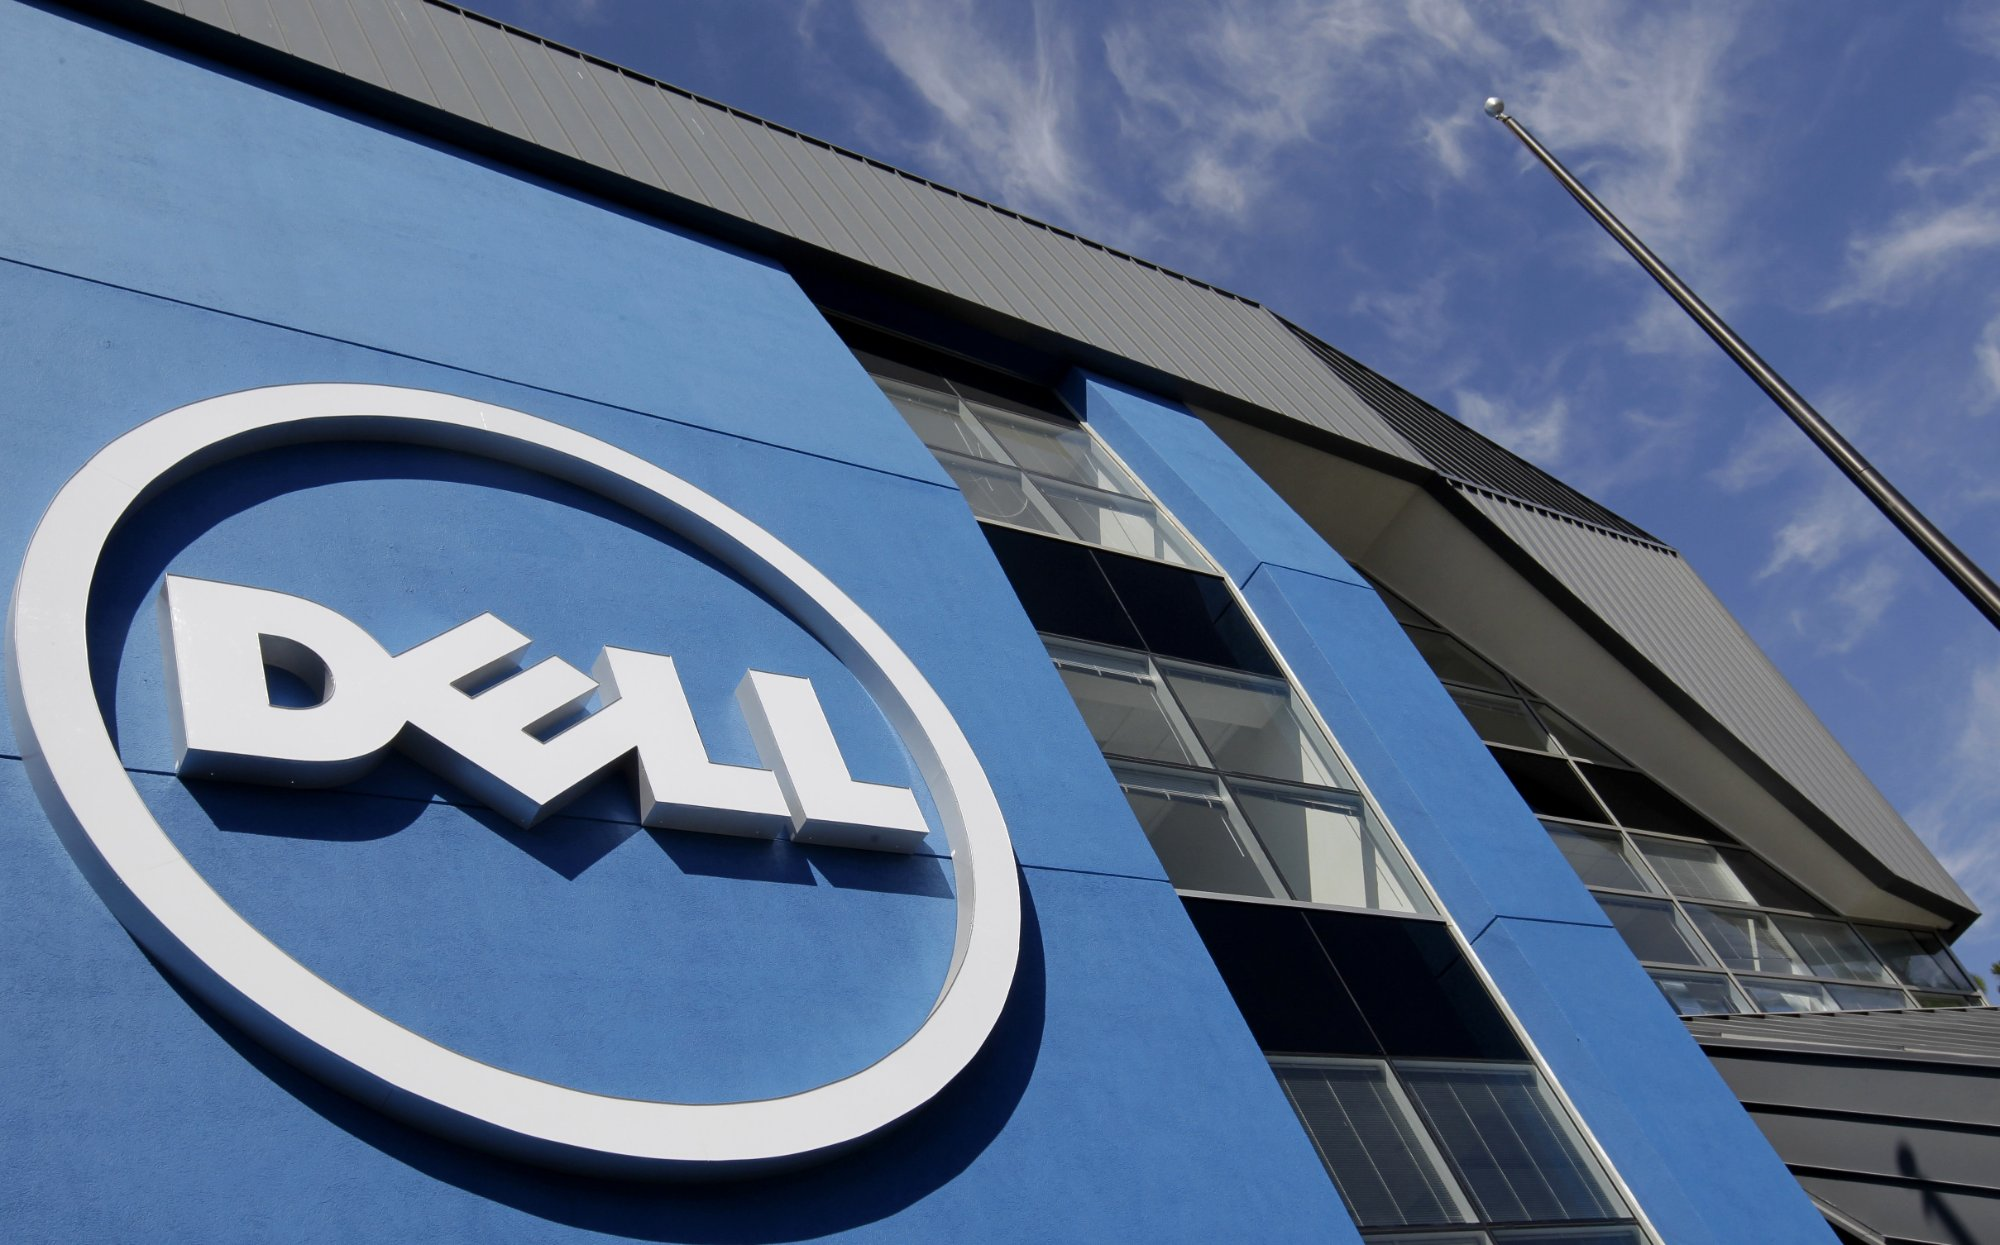 Dell Technologies Inc. Stock Ticks Higher on Q3 Earnings